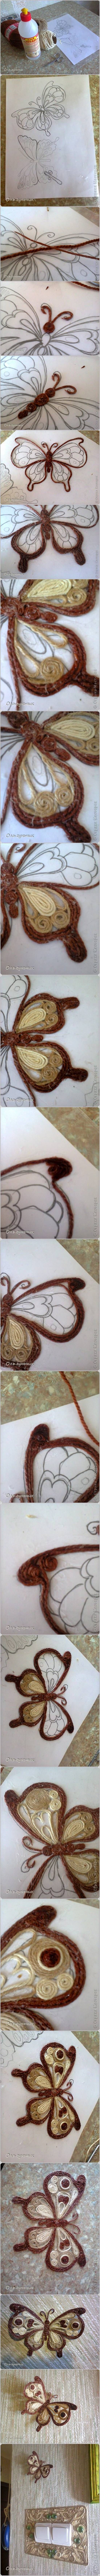 How to Make Beautiful Filigree Butterfly with Yarn #craft #decor #butterfly #filigree